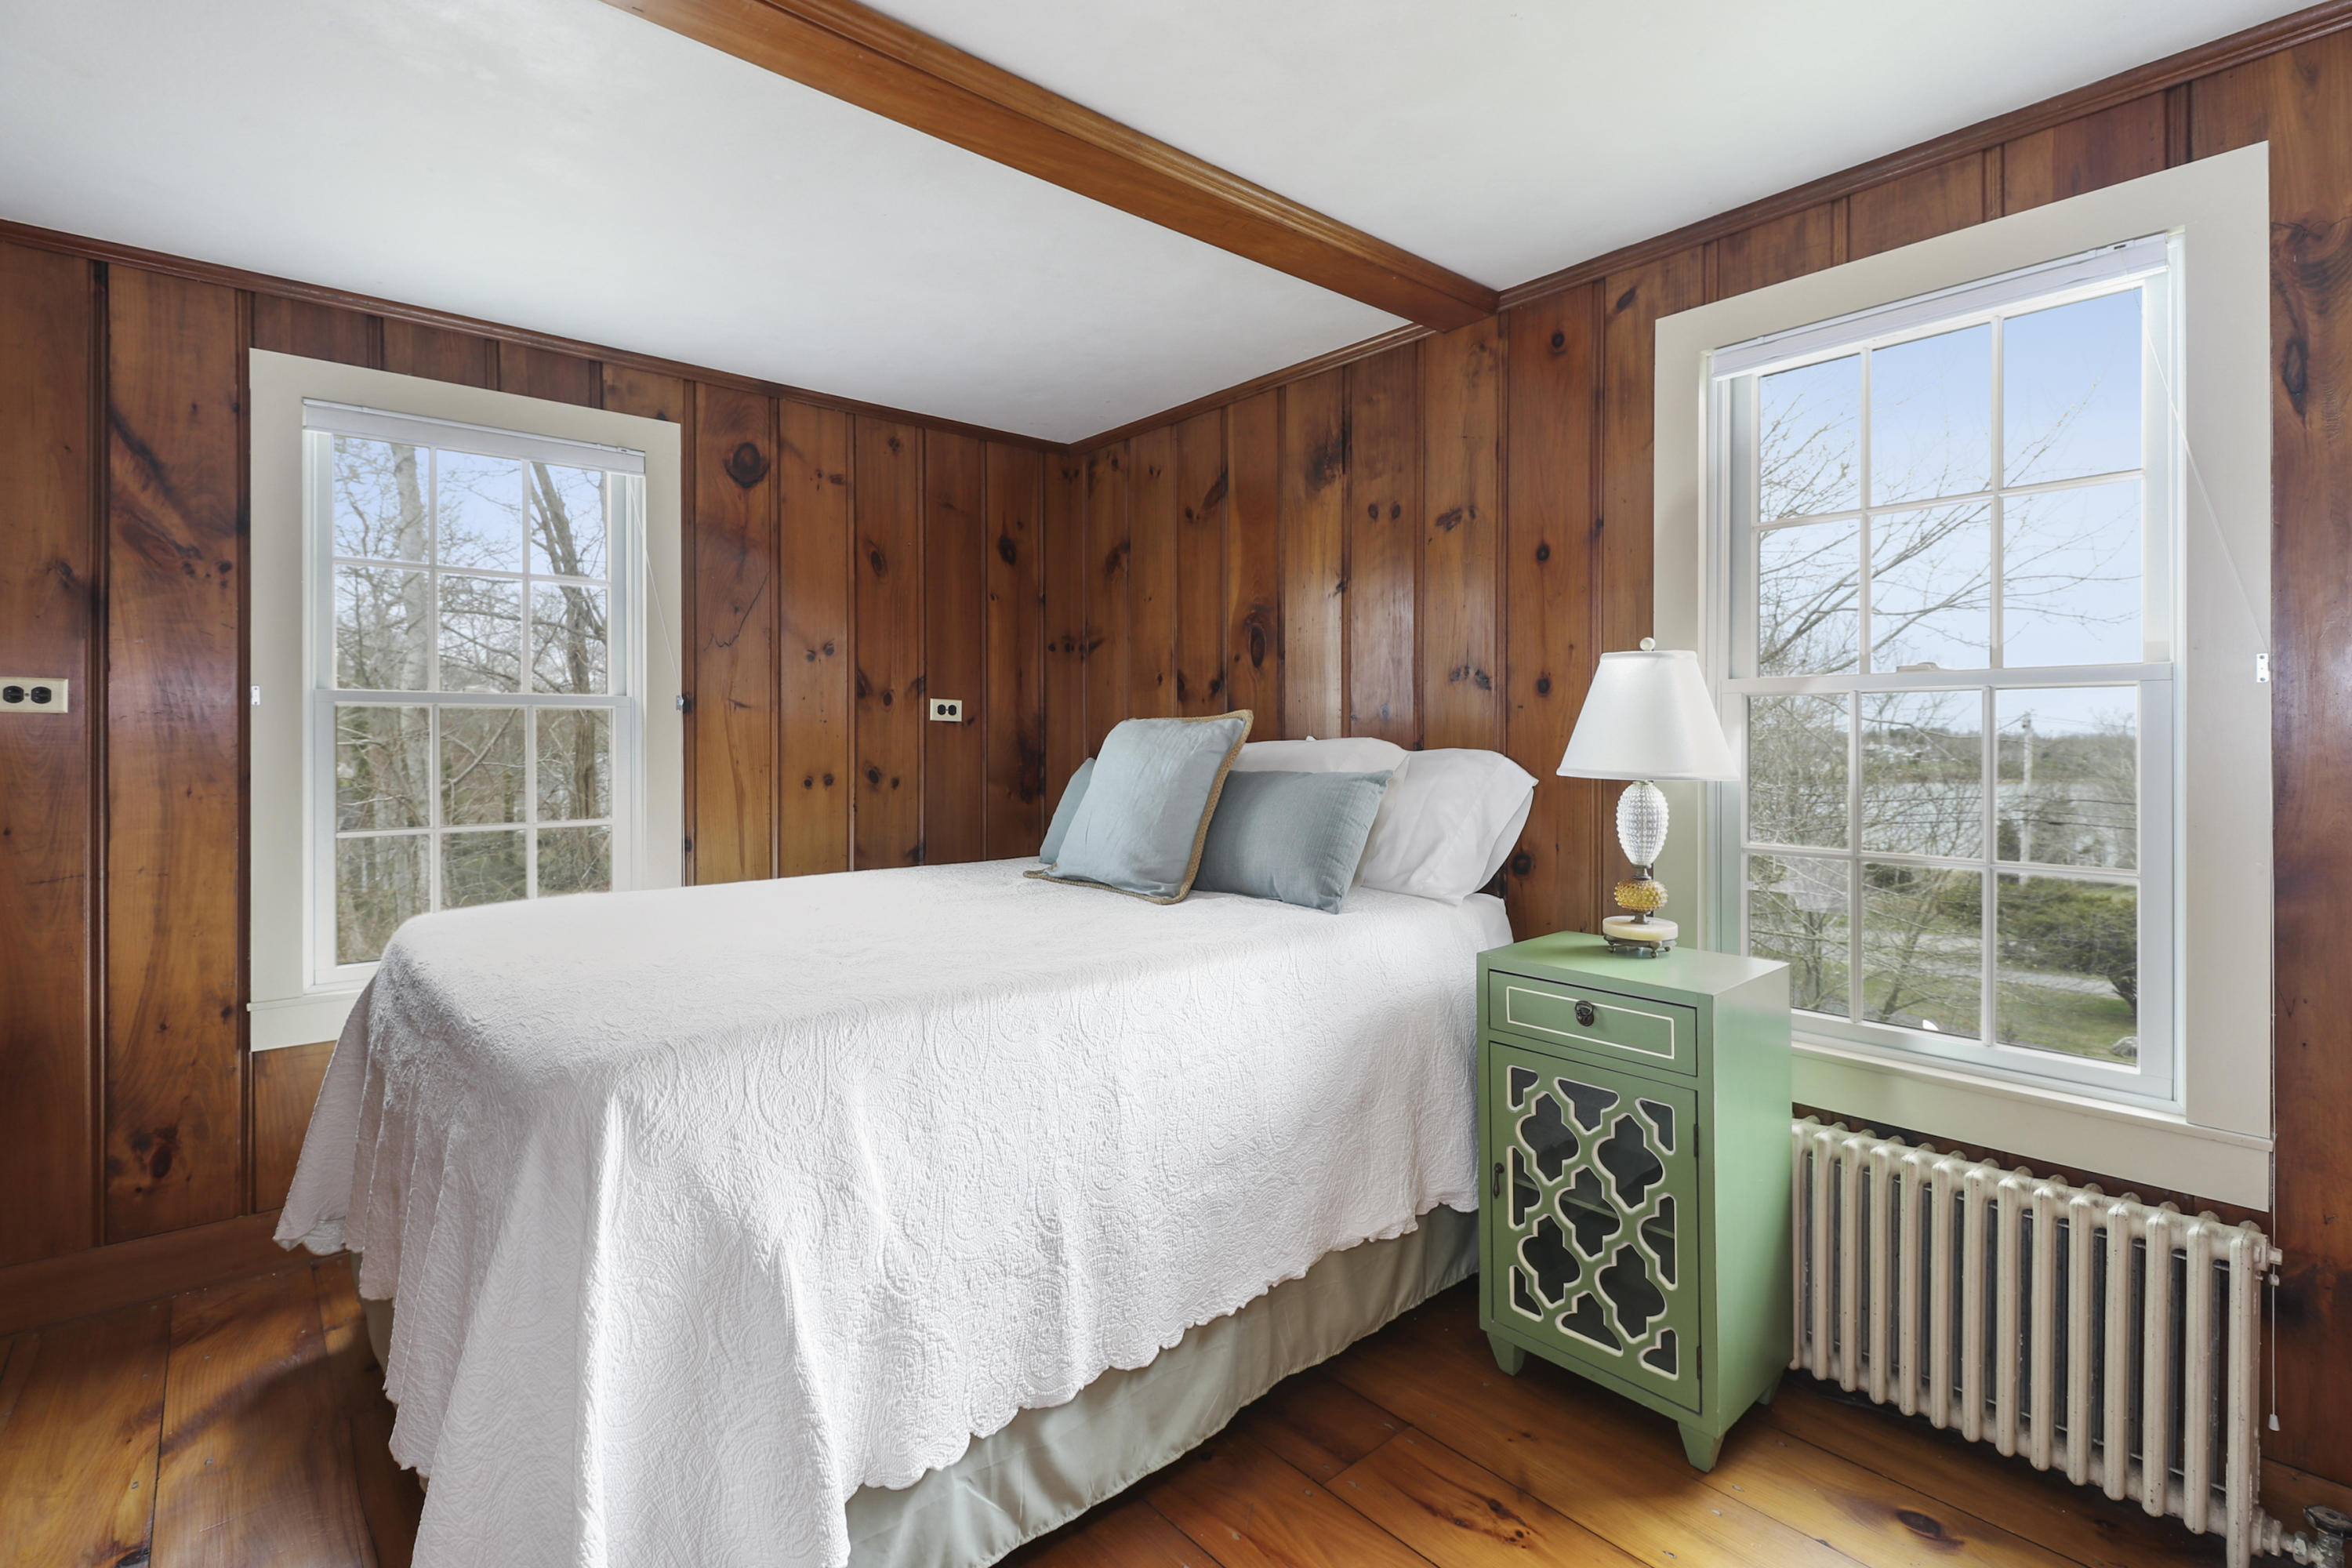 67 tonset road orleans ma 02653 property image 14